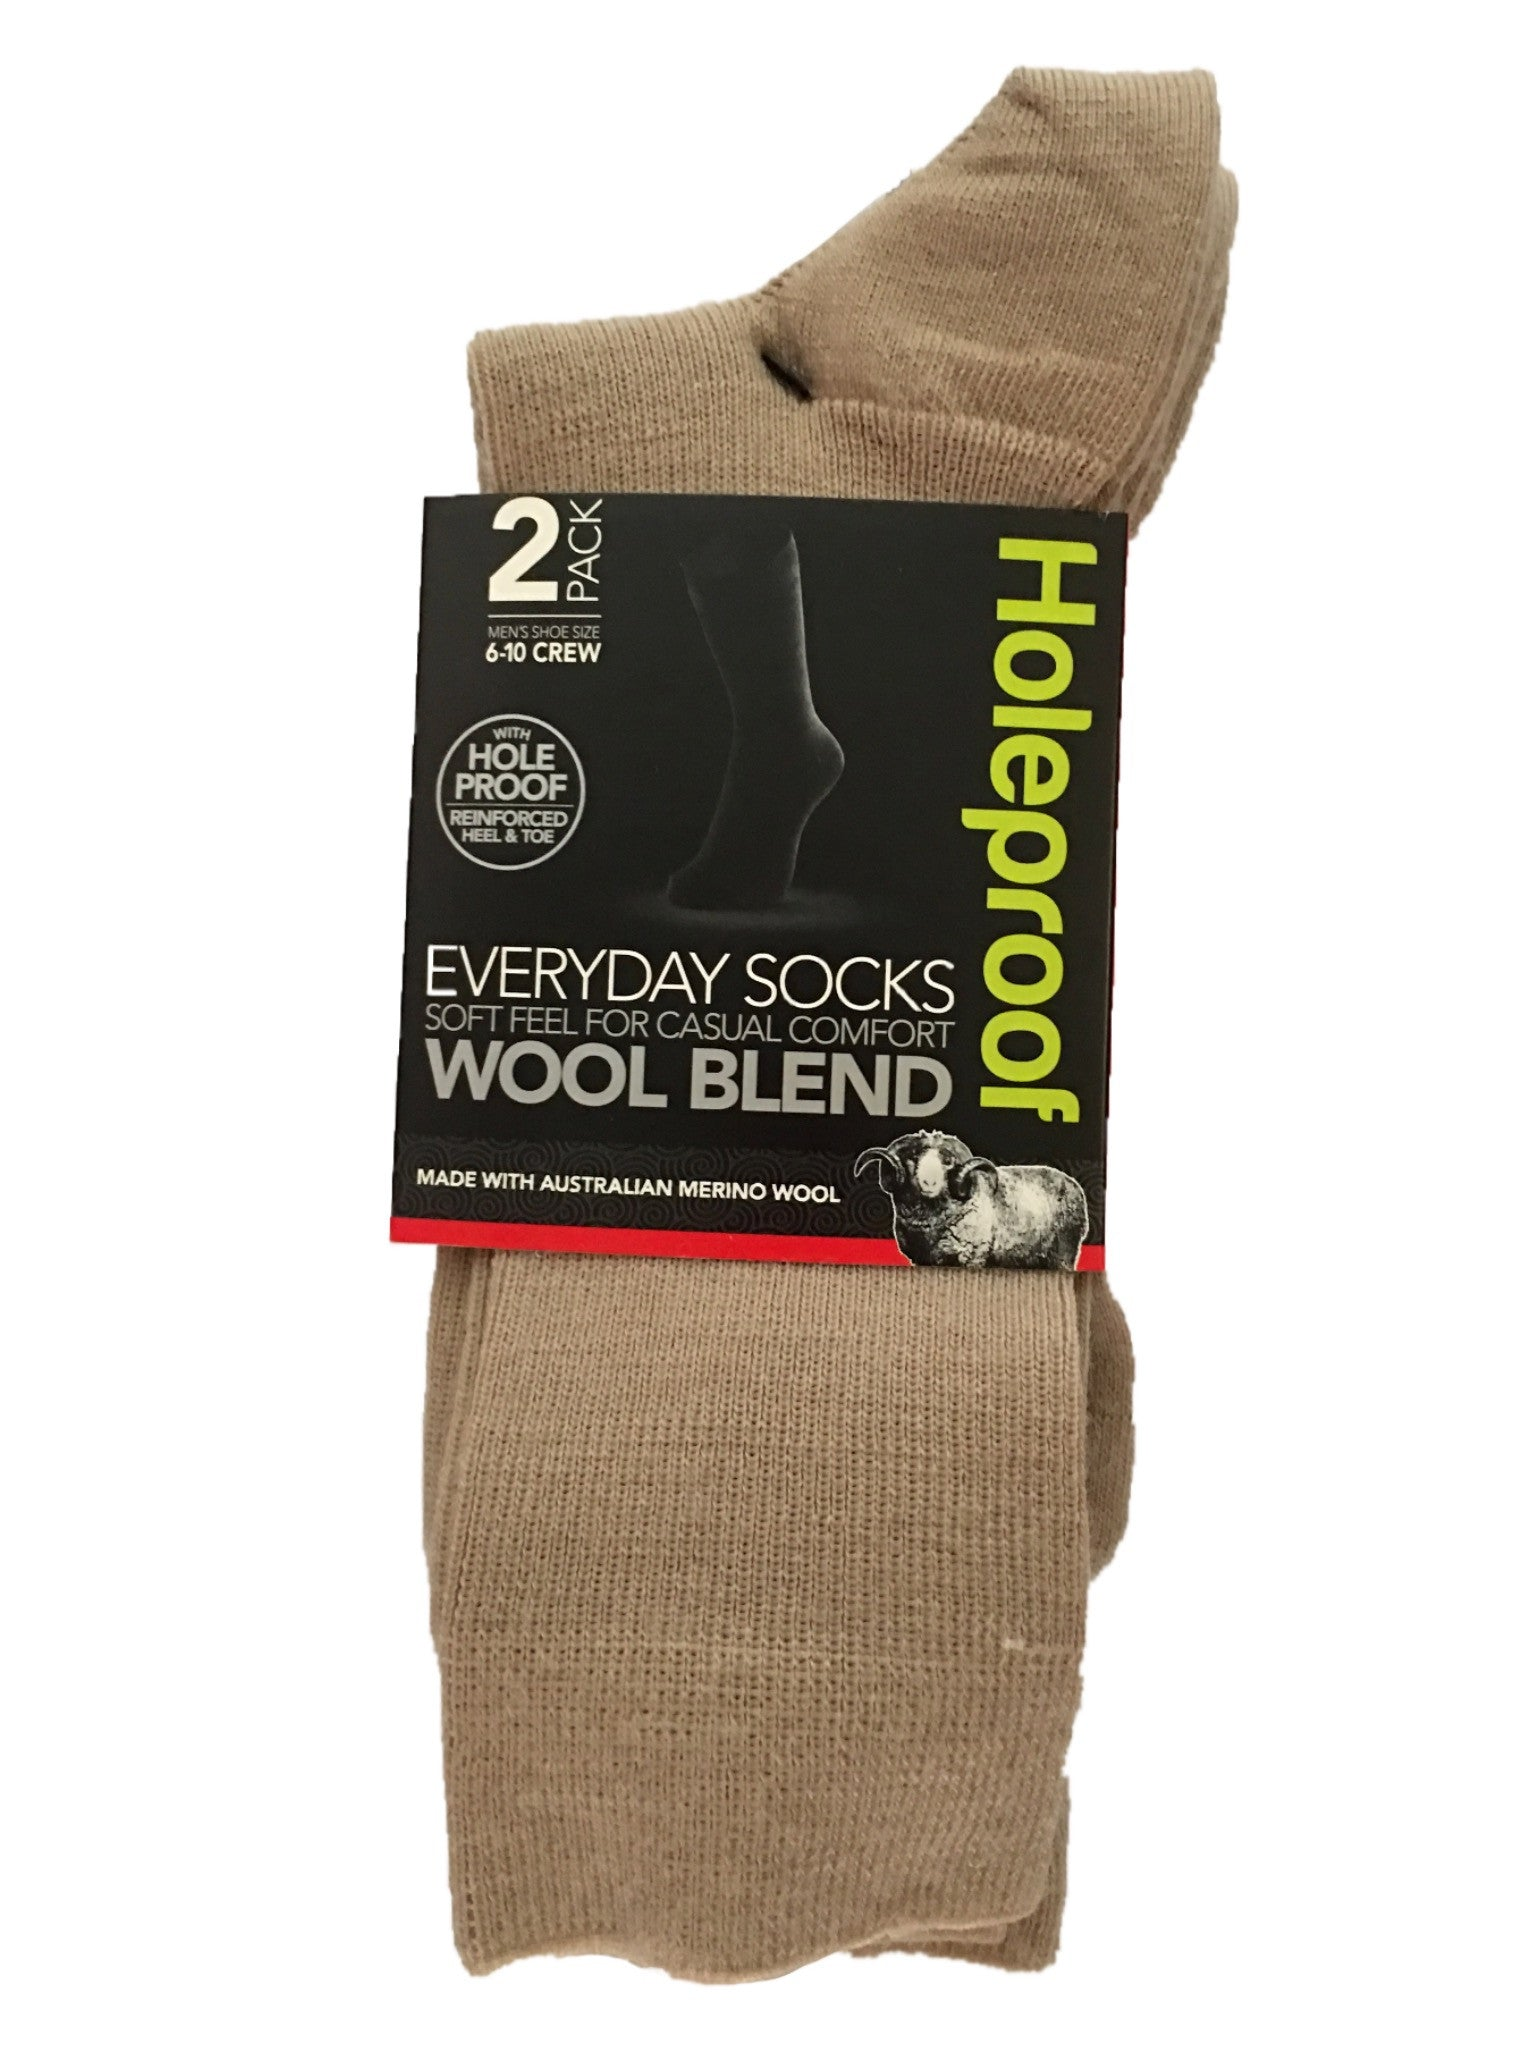 Holeproof Everyday Business Wool Blend 2 Pack - Oatmeal